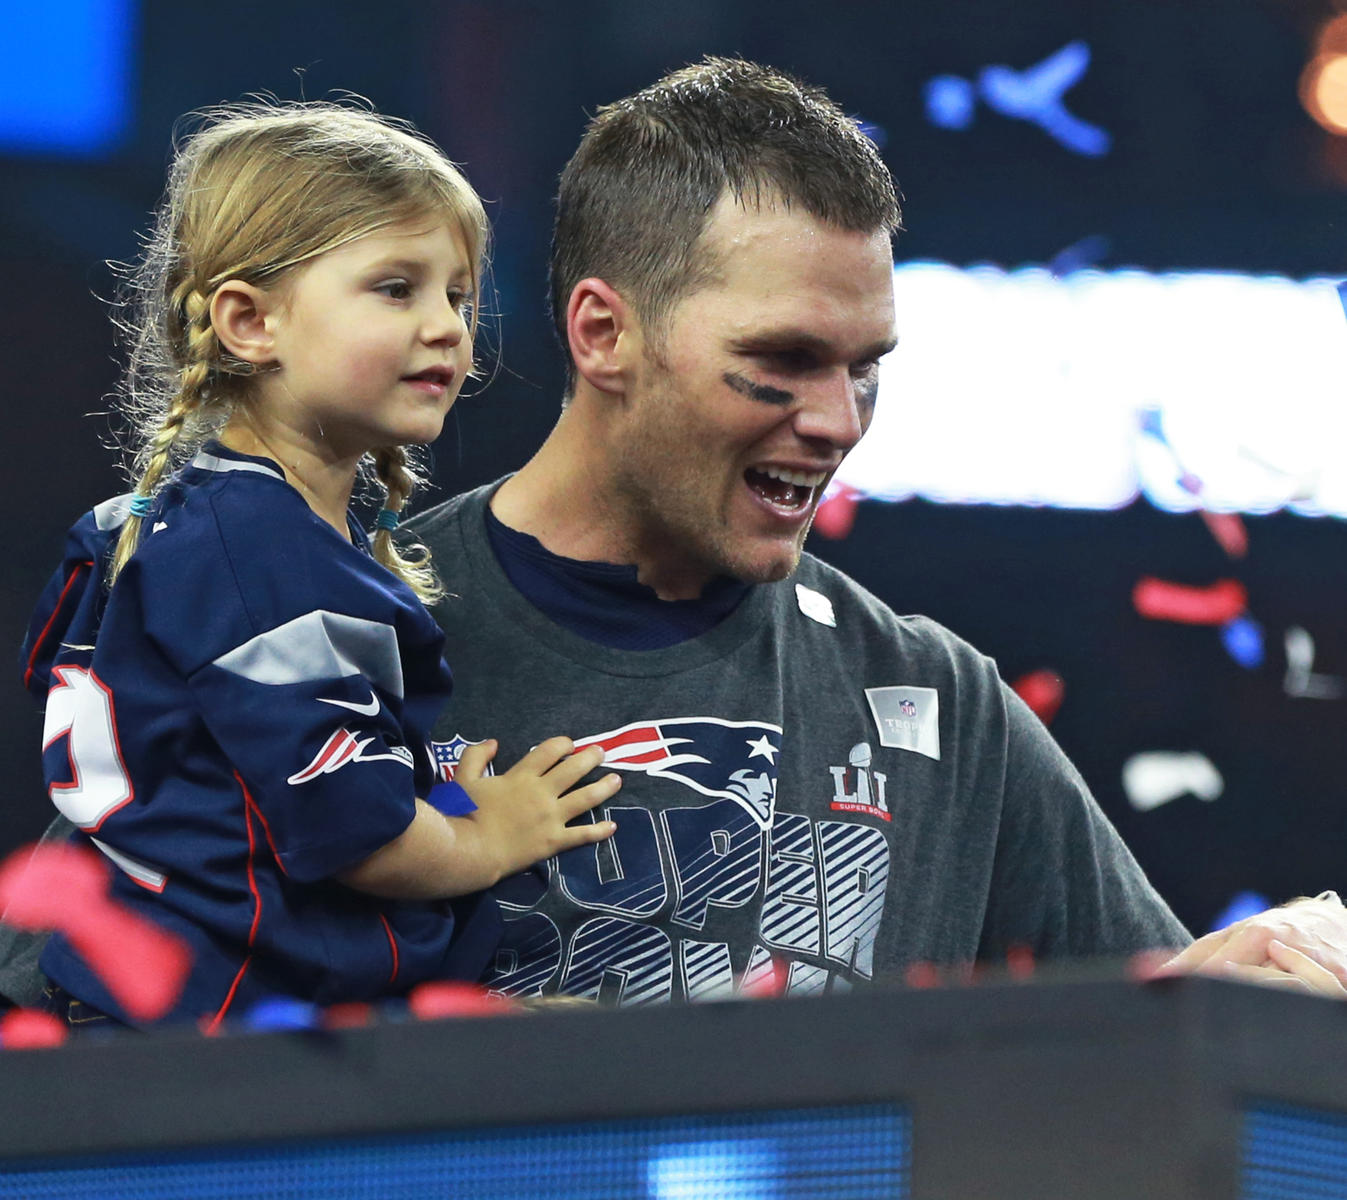 Tom Brady Cuts Interview Short After Radio Host Insults His 5-Year-Old Daughter